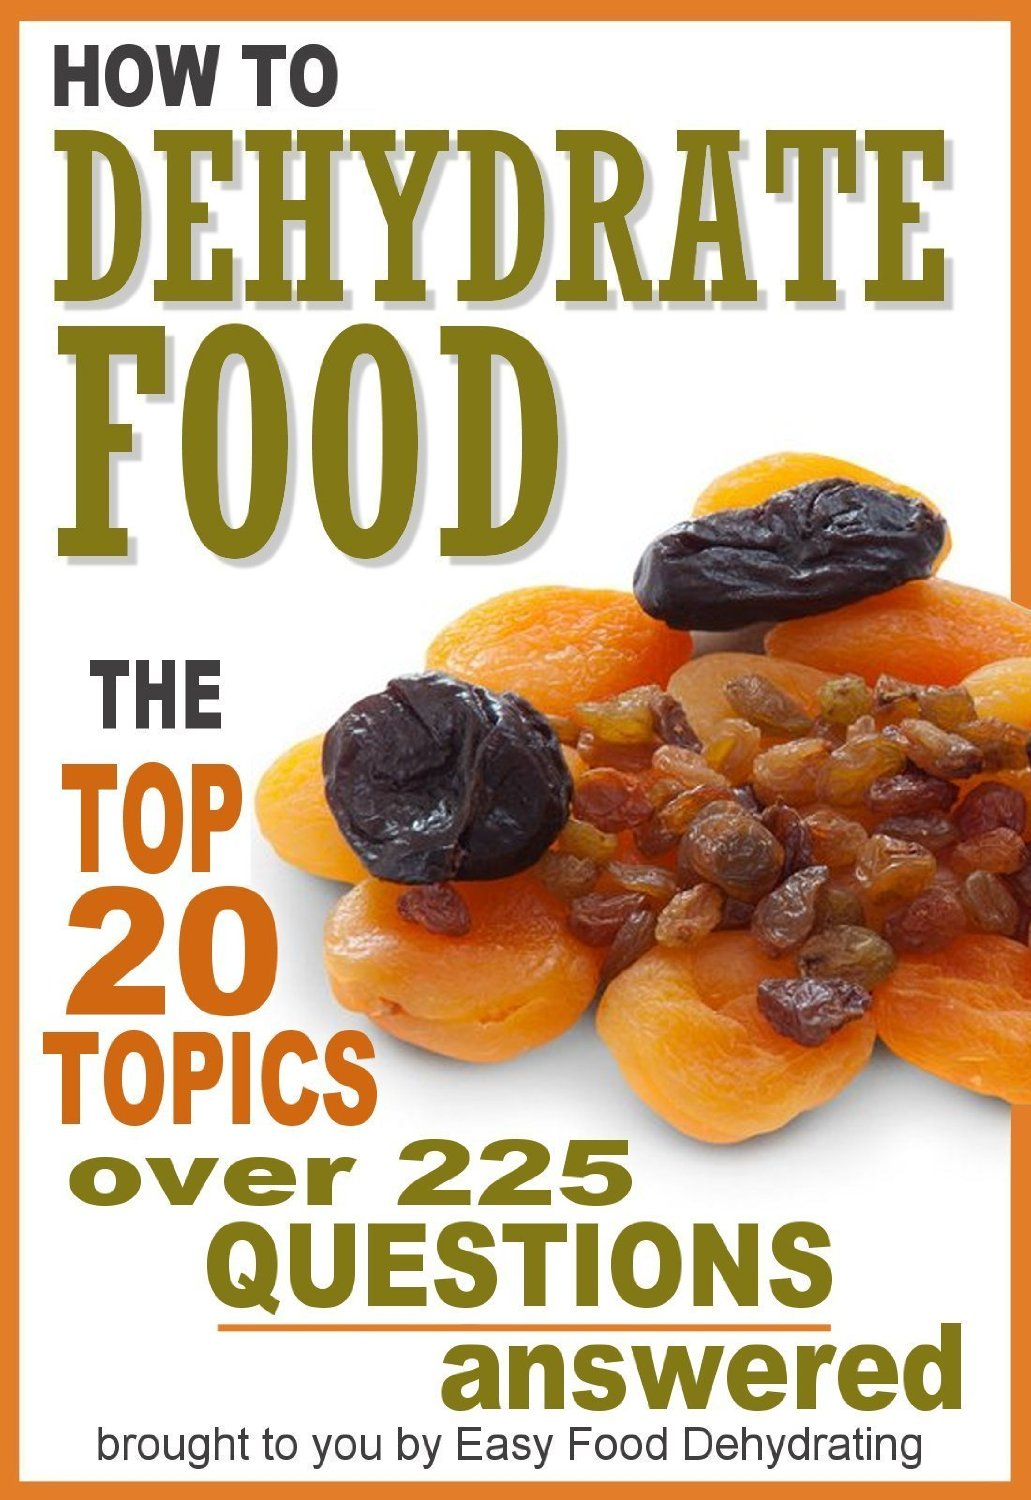 How to Dehydrate Food... Top 20 Topics... over 225 Questions Answered free download